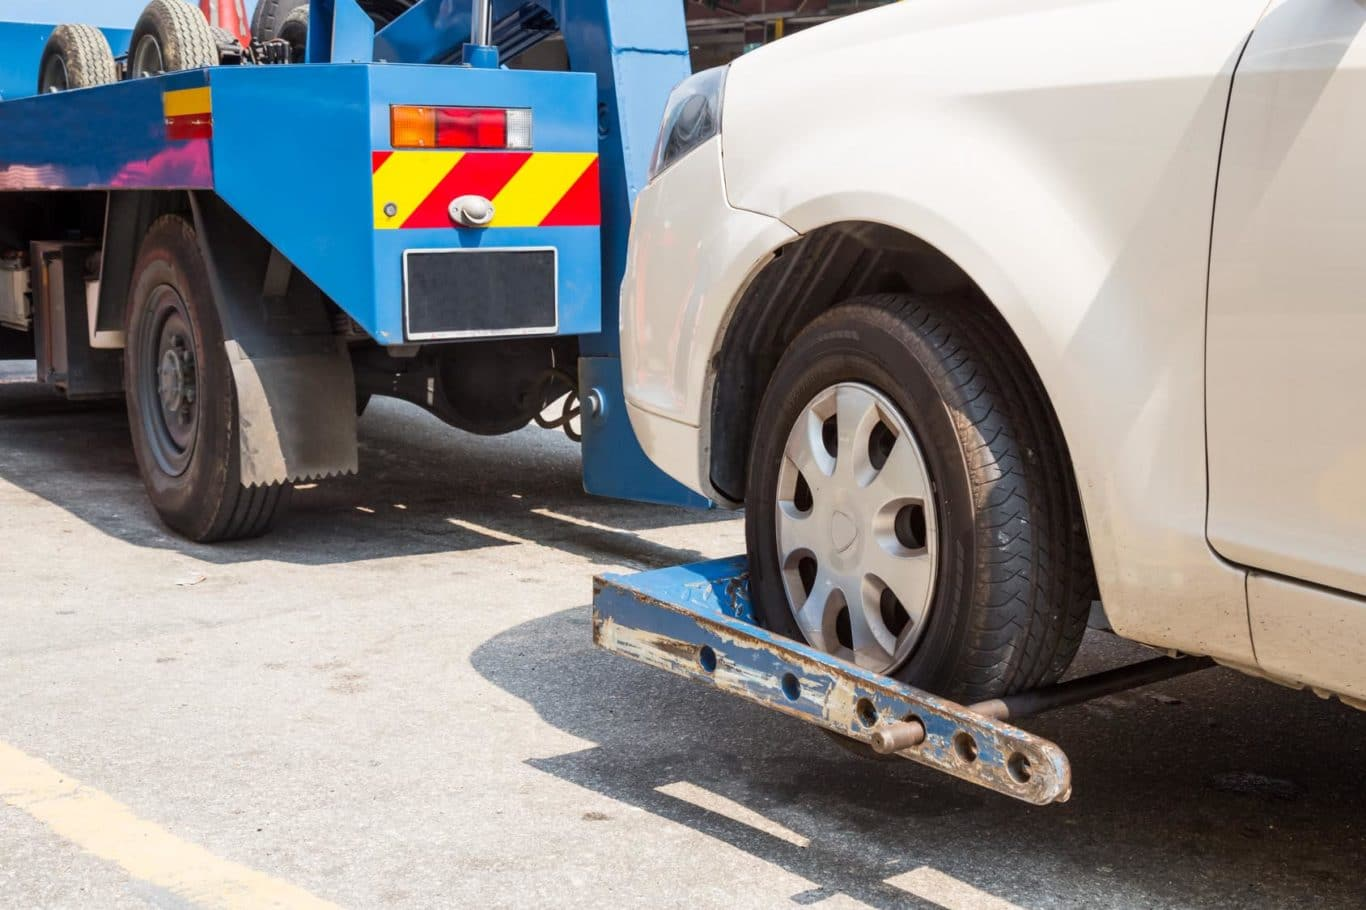 Malahide expert Car Towing services